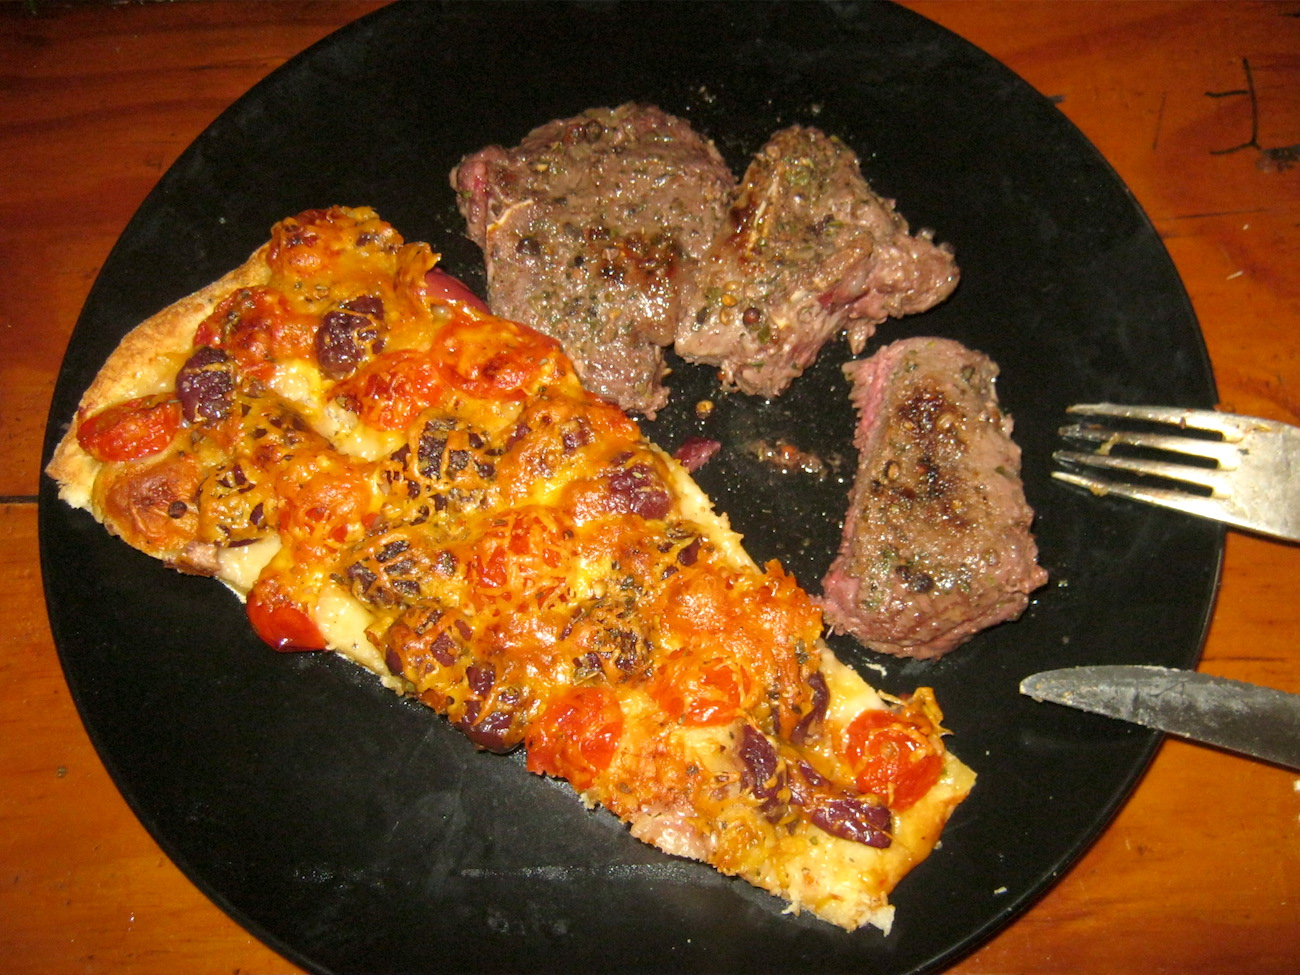 The meat spice in this recipe was used for these springbok chops as well as the slice of pizza.